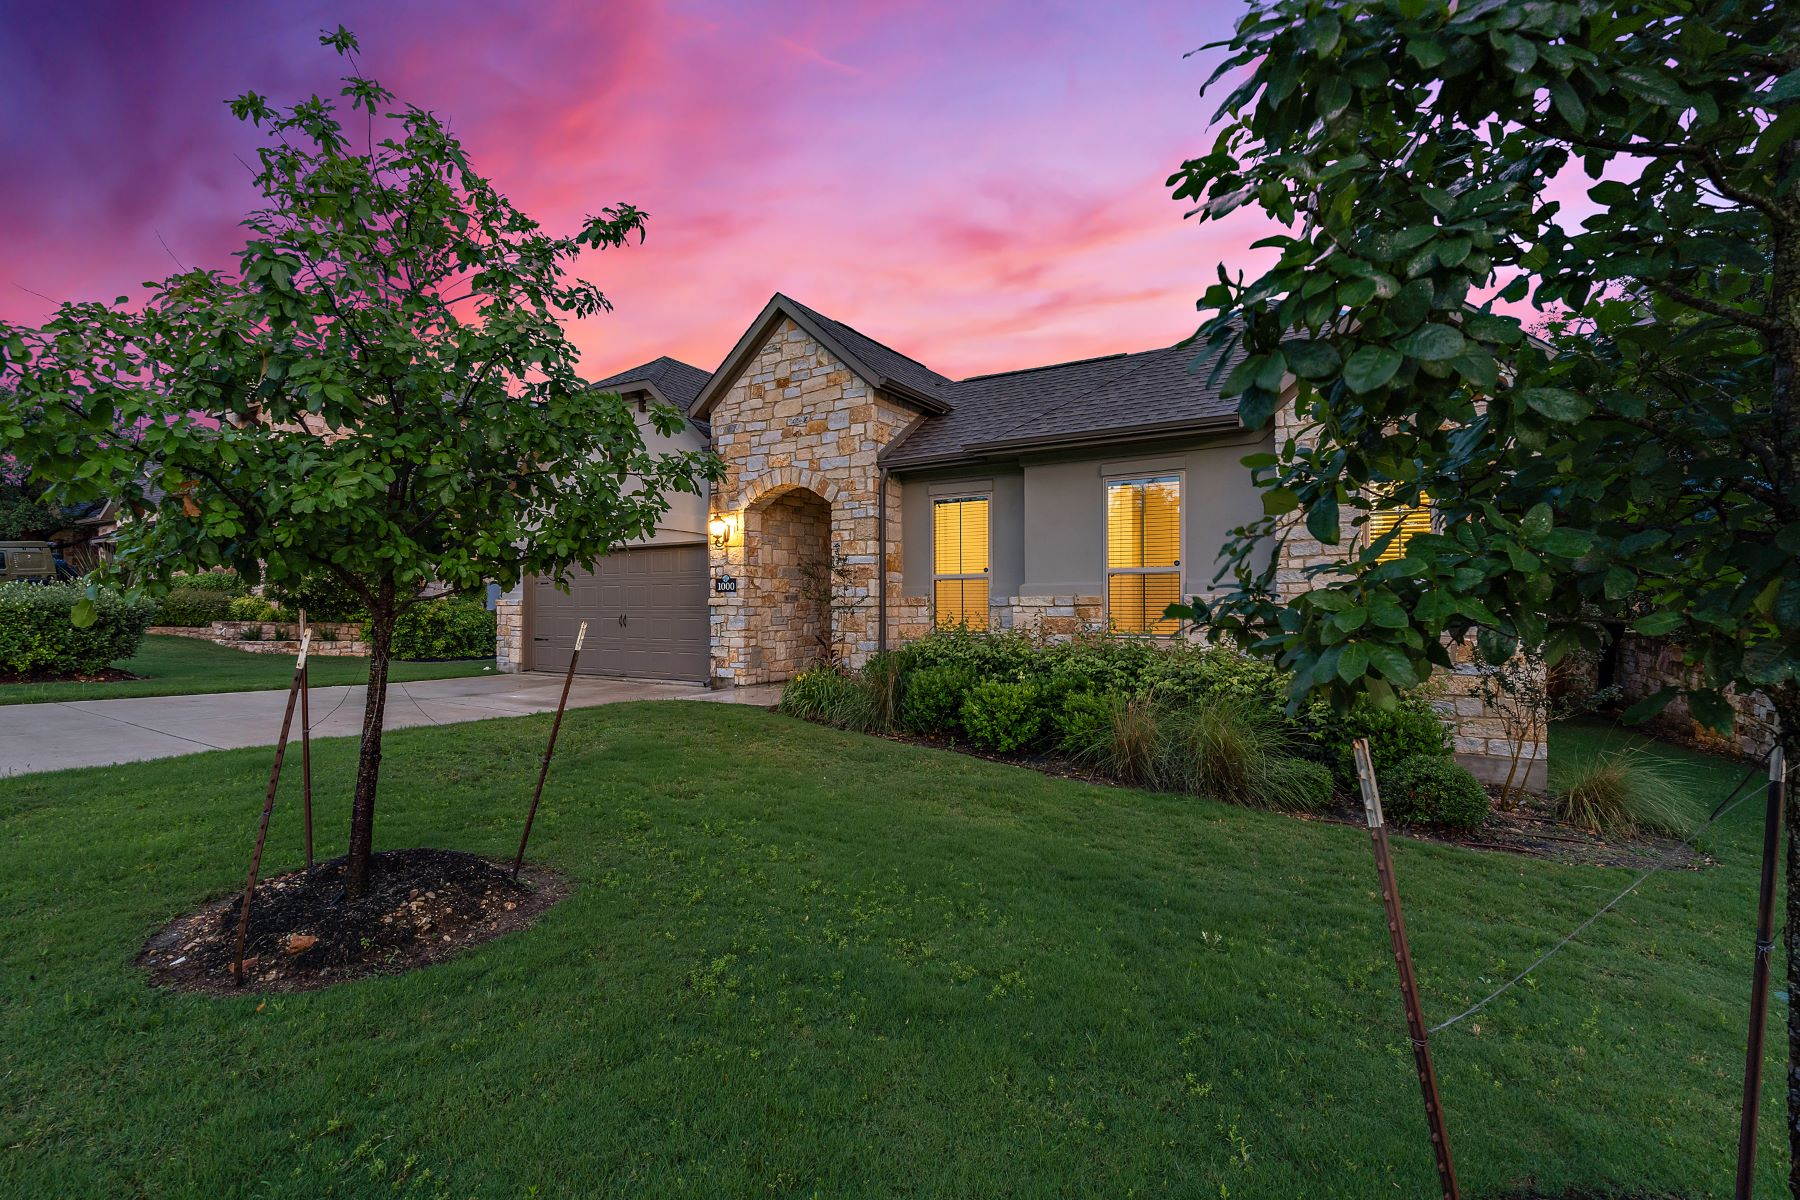 Single Family Homes for Sale at Immaculate Wilshire home in Water Oak North 1000 Winding Way Drive Georgetown, Texas 78628 United States